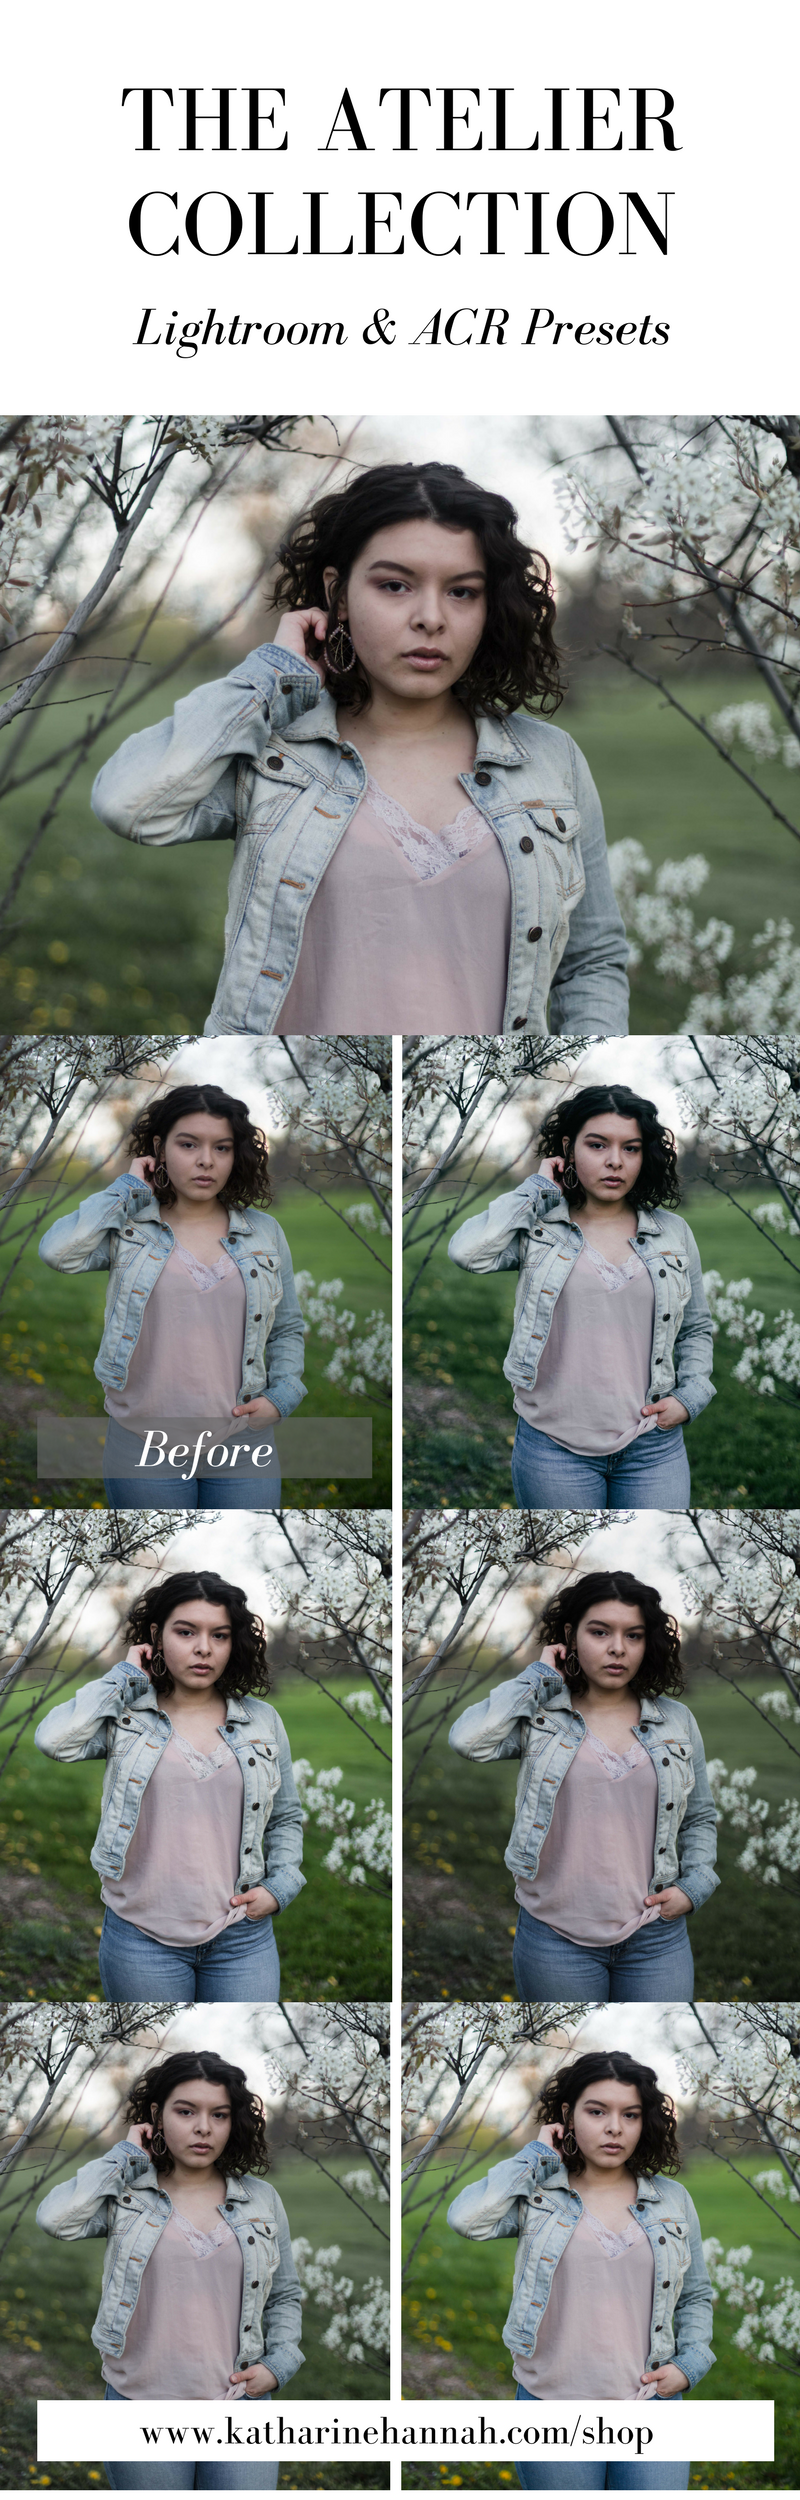 Lightroom & ACR Presets by Katharine Hannah Photography | The Atelier Collection was designed was designed with subtle & clean color shifts, perfect for indoor portraits or cloudy days.